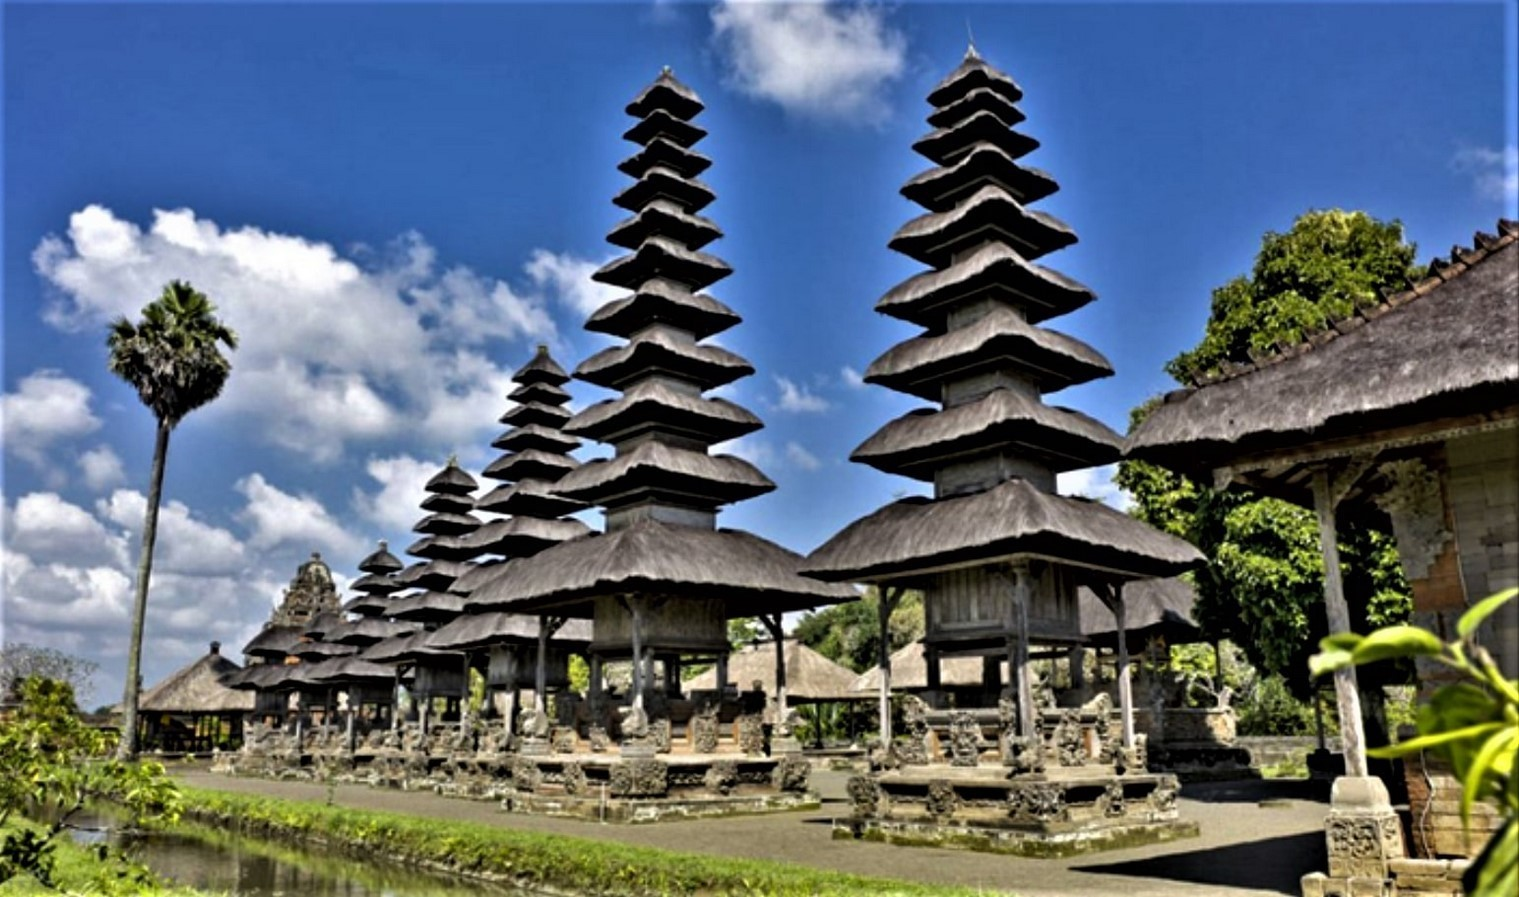 15 Temples every Architect must visit in Indonesia - Sheet13